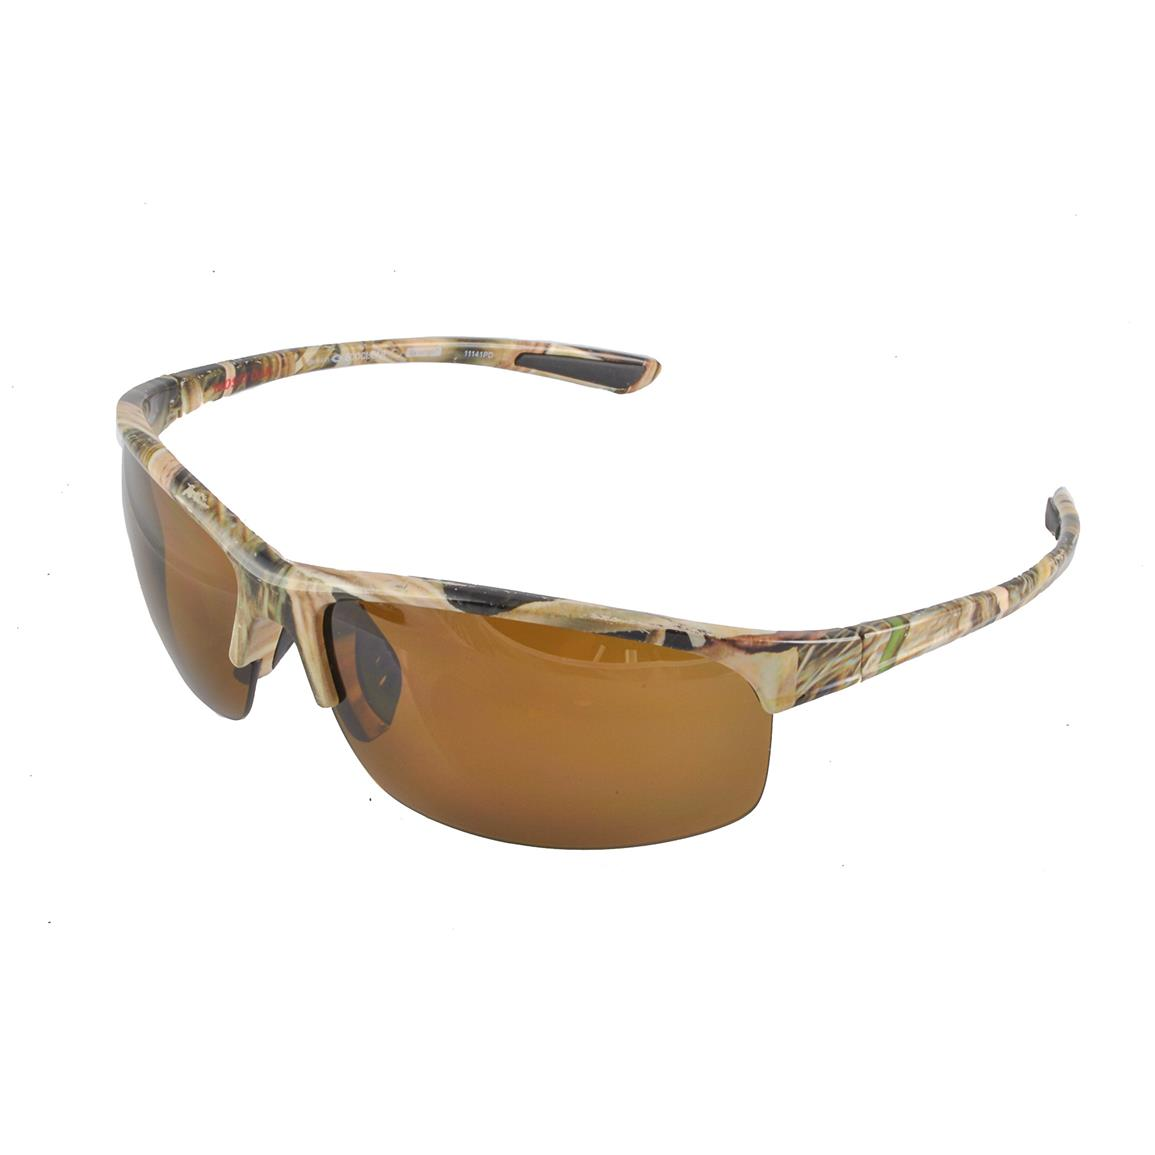 Neoptx Mossy Oak Men's Tournament Polarized Sunglasses, Mossy Oak Shadow Grass